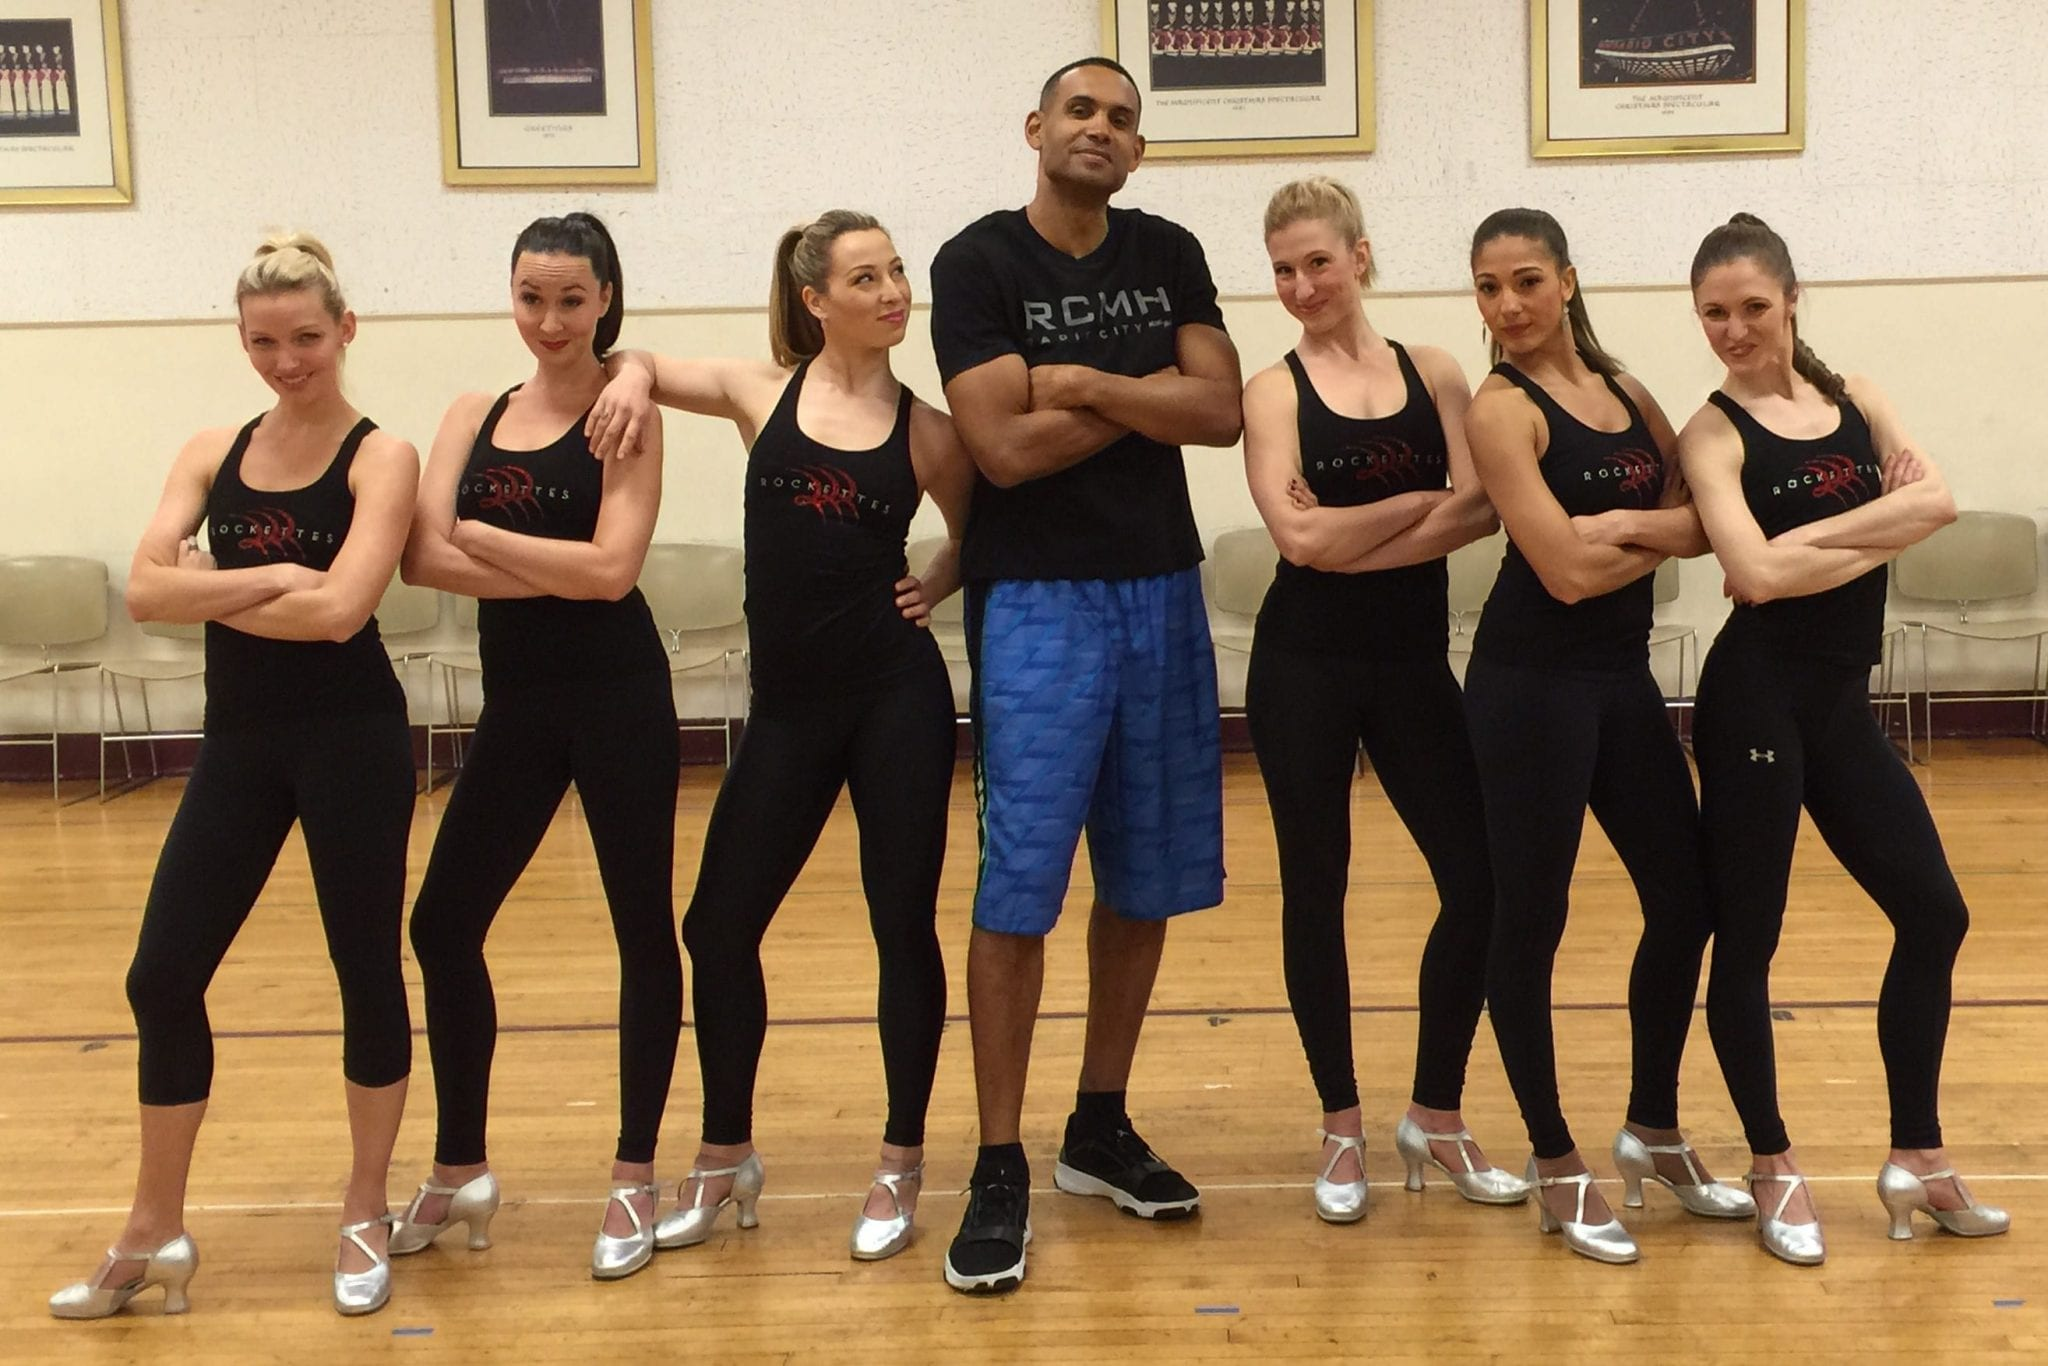 Grant-Hill-Rockette-Lauren